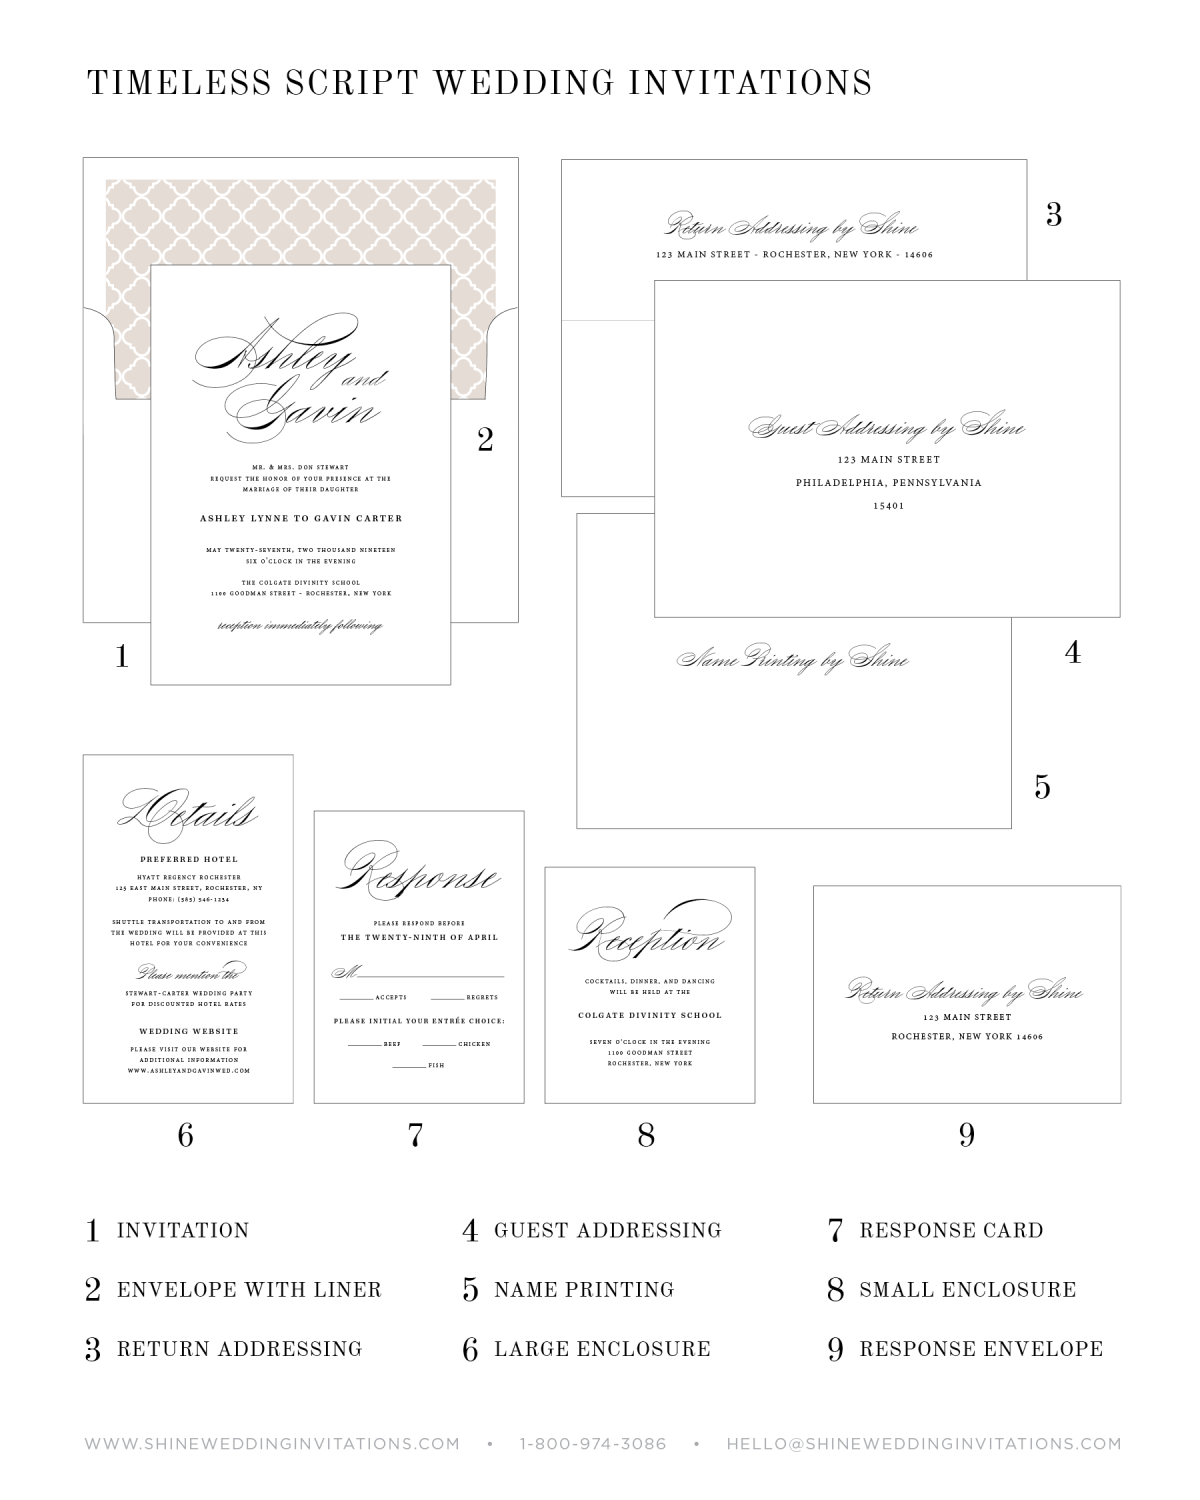 Diagram of Wedding Invitation Pieces